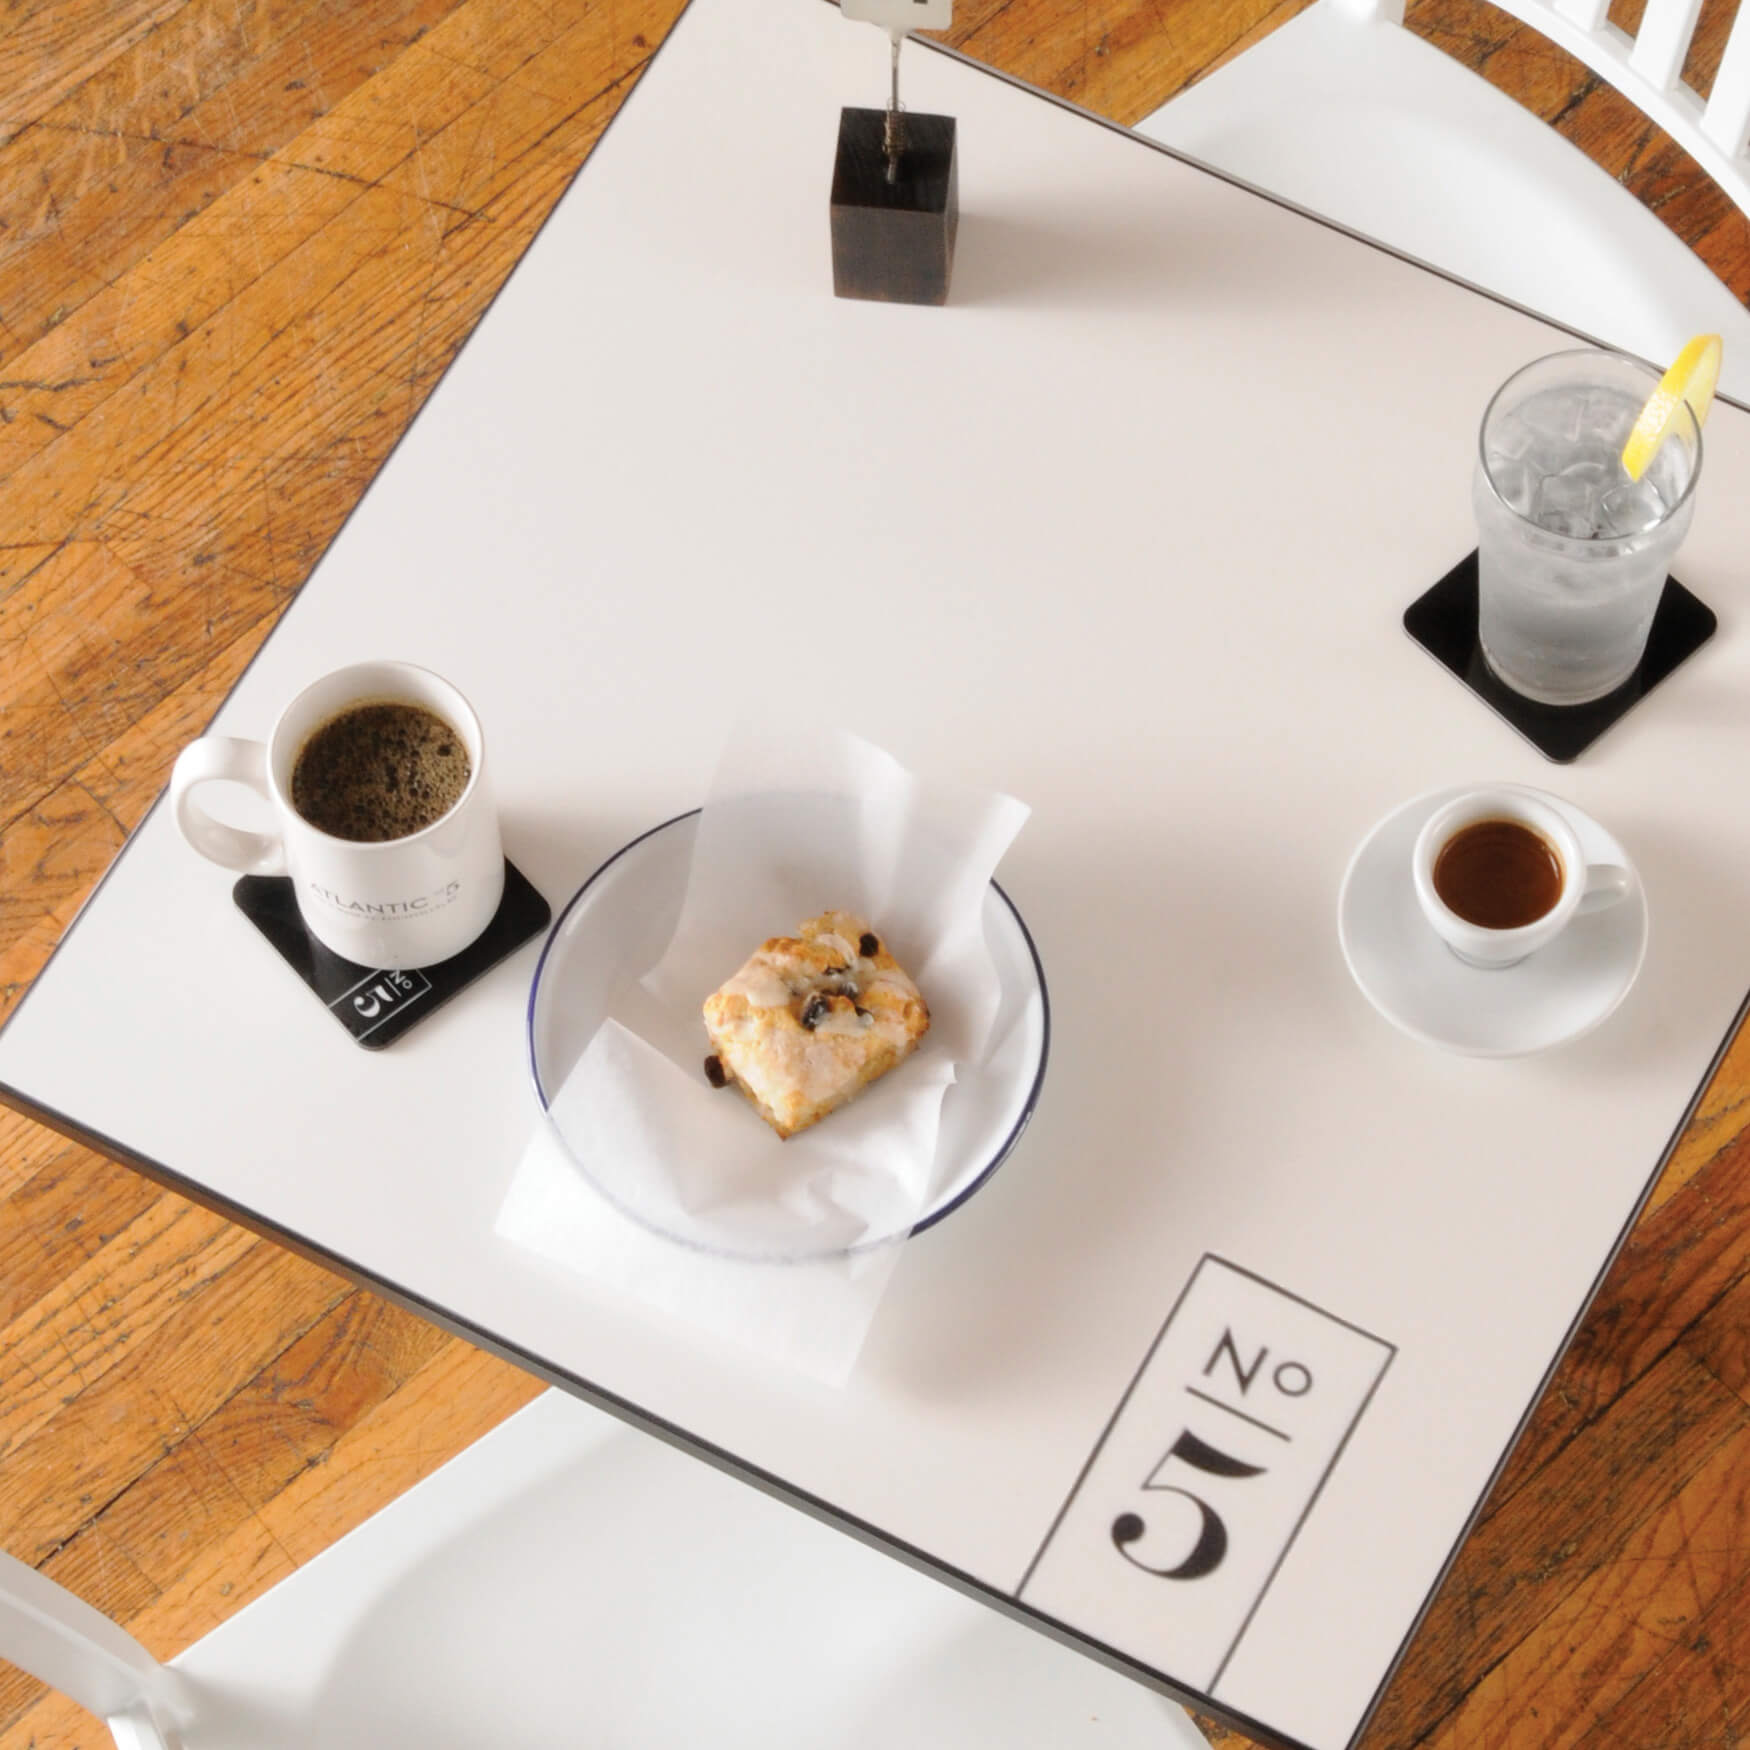 productexample-gallery-table05